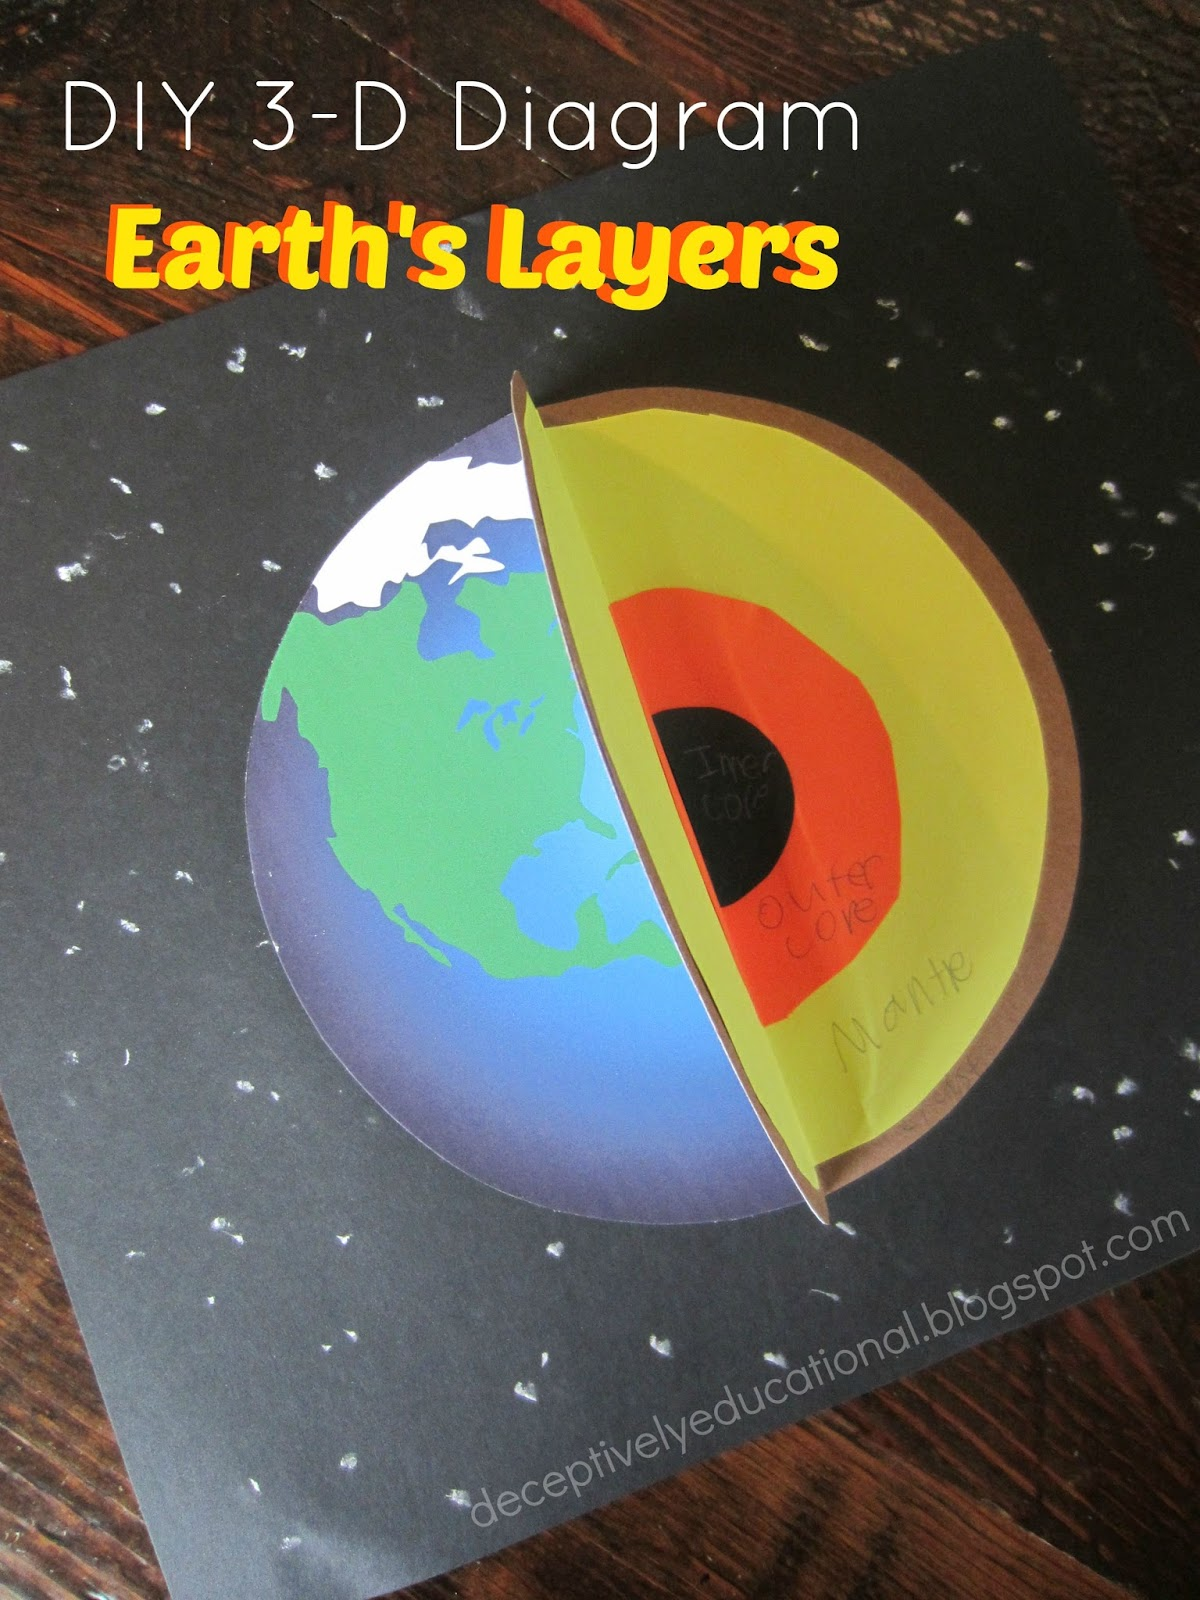 Layers Of The Earth Diagram Kia Rio Car Stereo Wiring Relentlessly Fun Deceptively Educational 39s